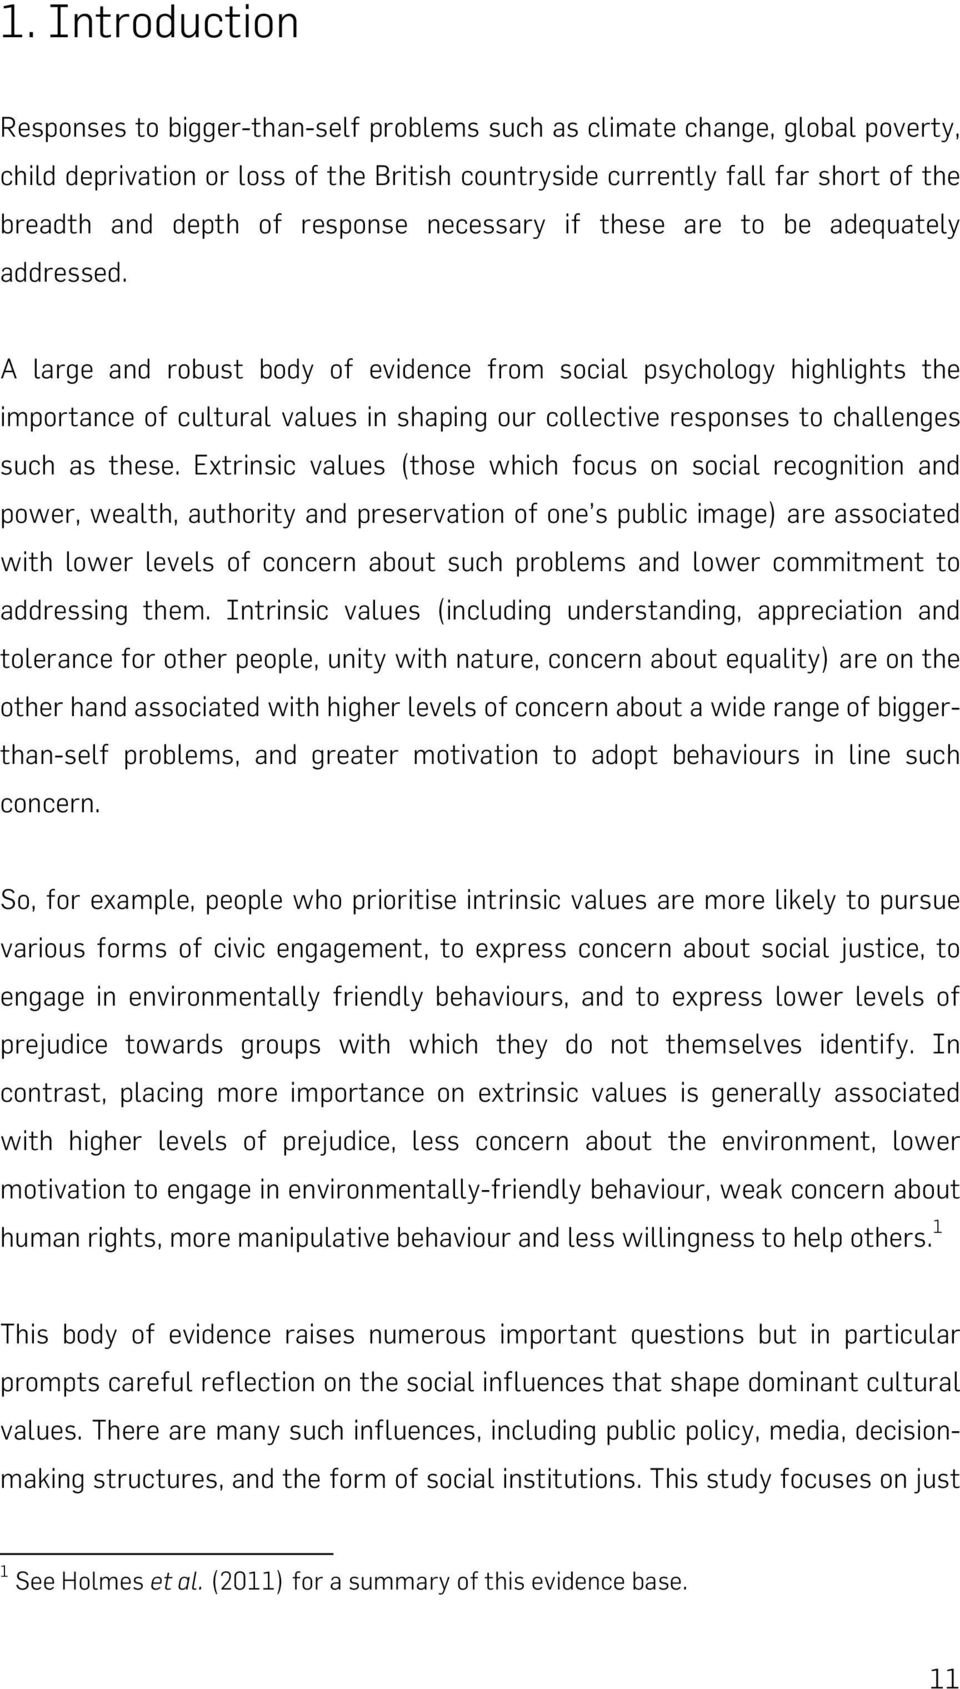 A large and robust body of evidence from social psychology highlights the importance of cultural values in shaping our collective responses to challenges such as these.